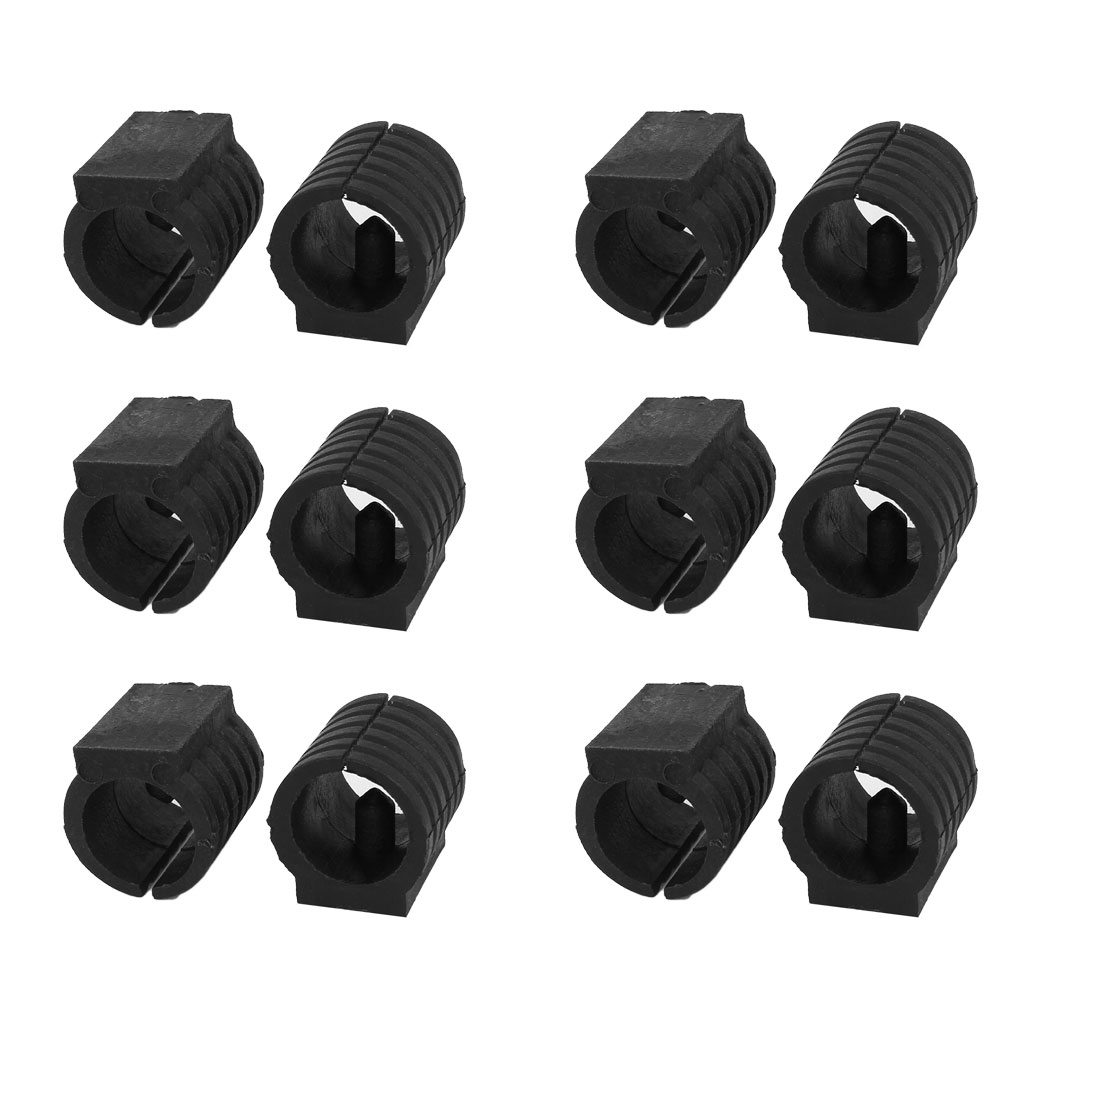 Breuer Chair Tubing Pipe Foot Floor Glides Single Prong Round U-Shape Plastic Caps 16mm Dia 12Pcs